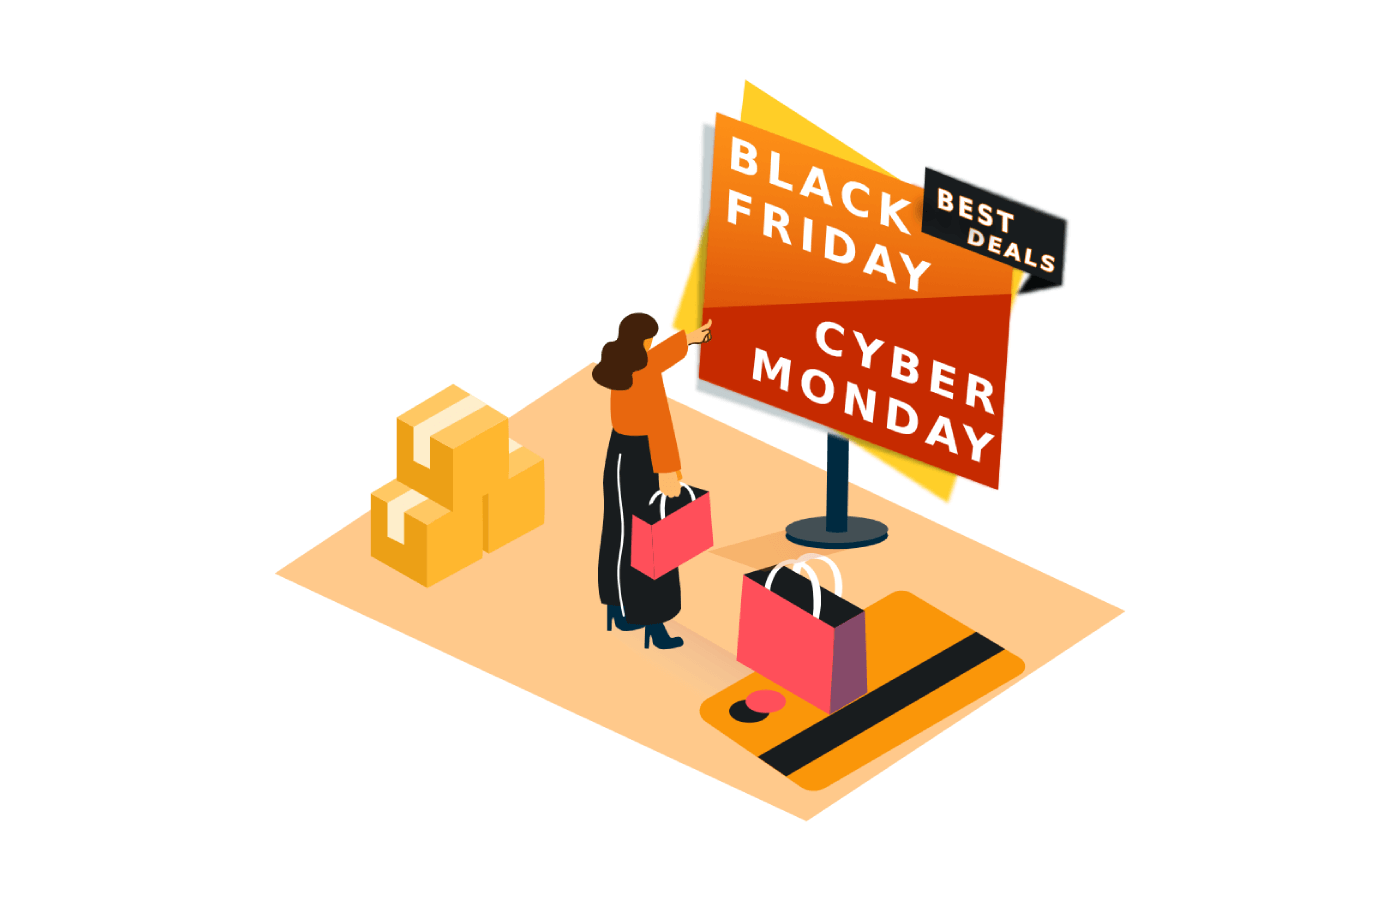 saas_black_friday_cyber_monday_deals